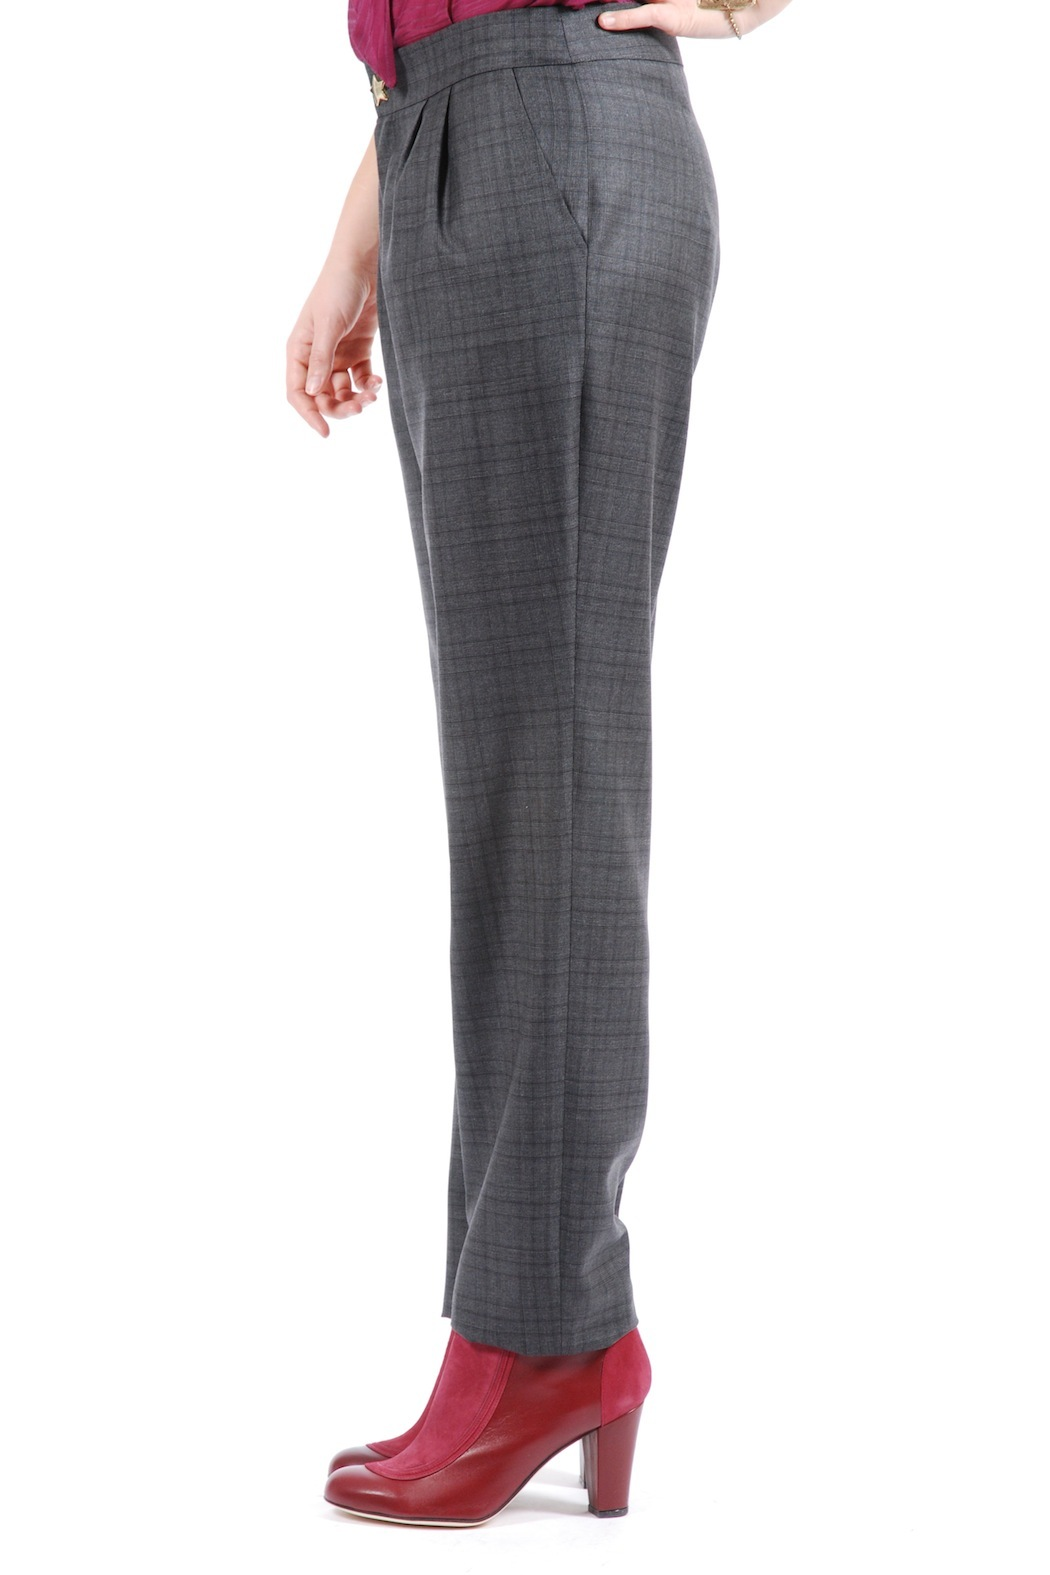 Phalaenopsis Pleated Cigarette Trousers - Side Cropped Image